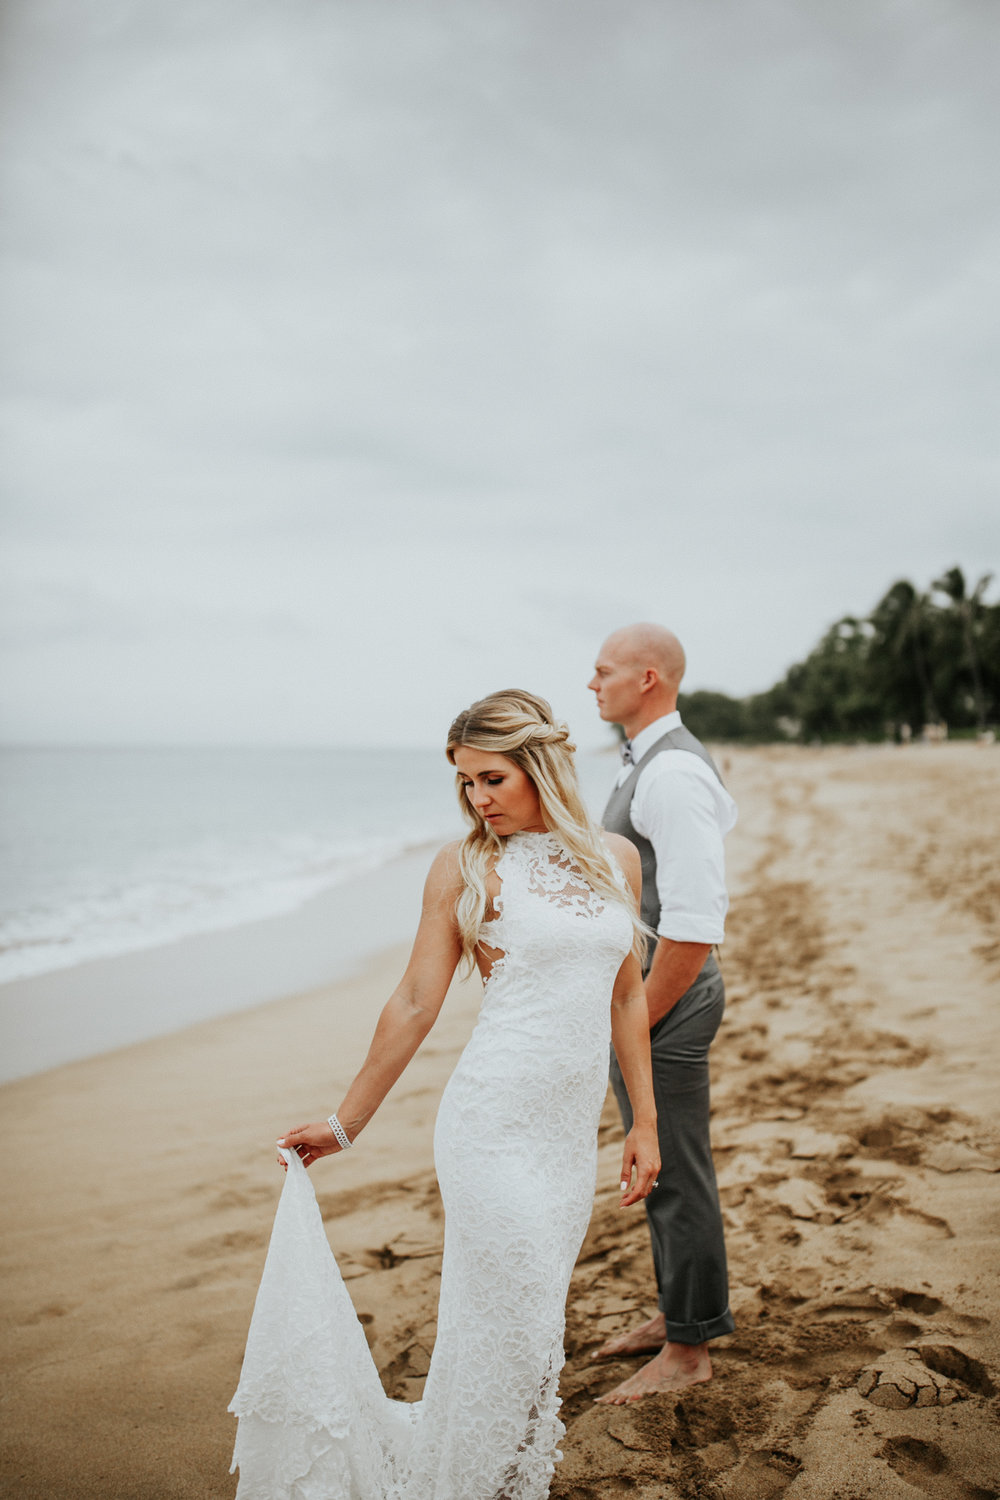 destination-wedding-photographer-hawaii-maui-elopement-49.jpg